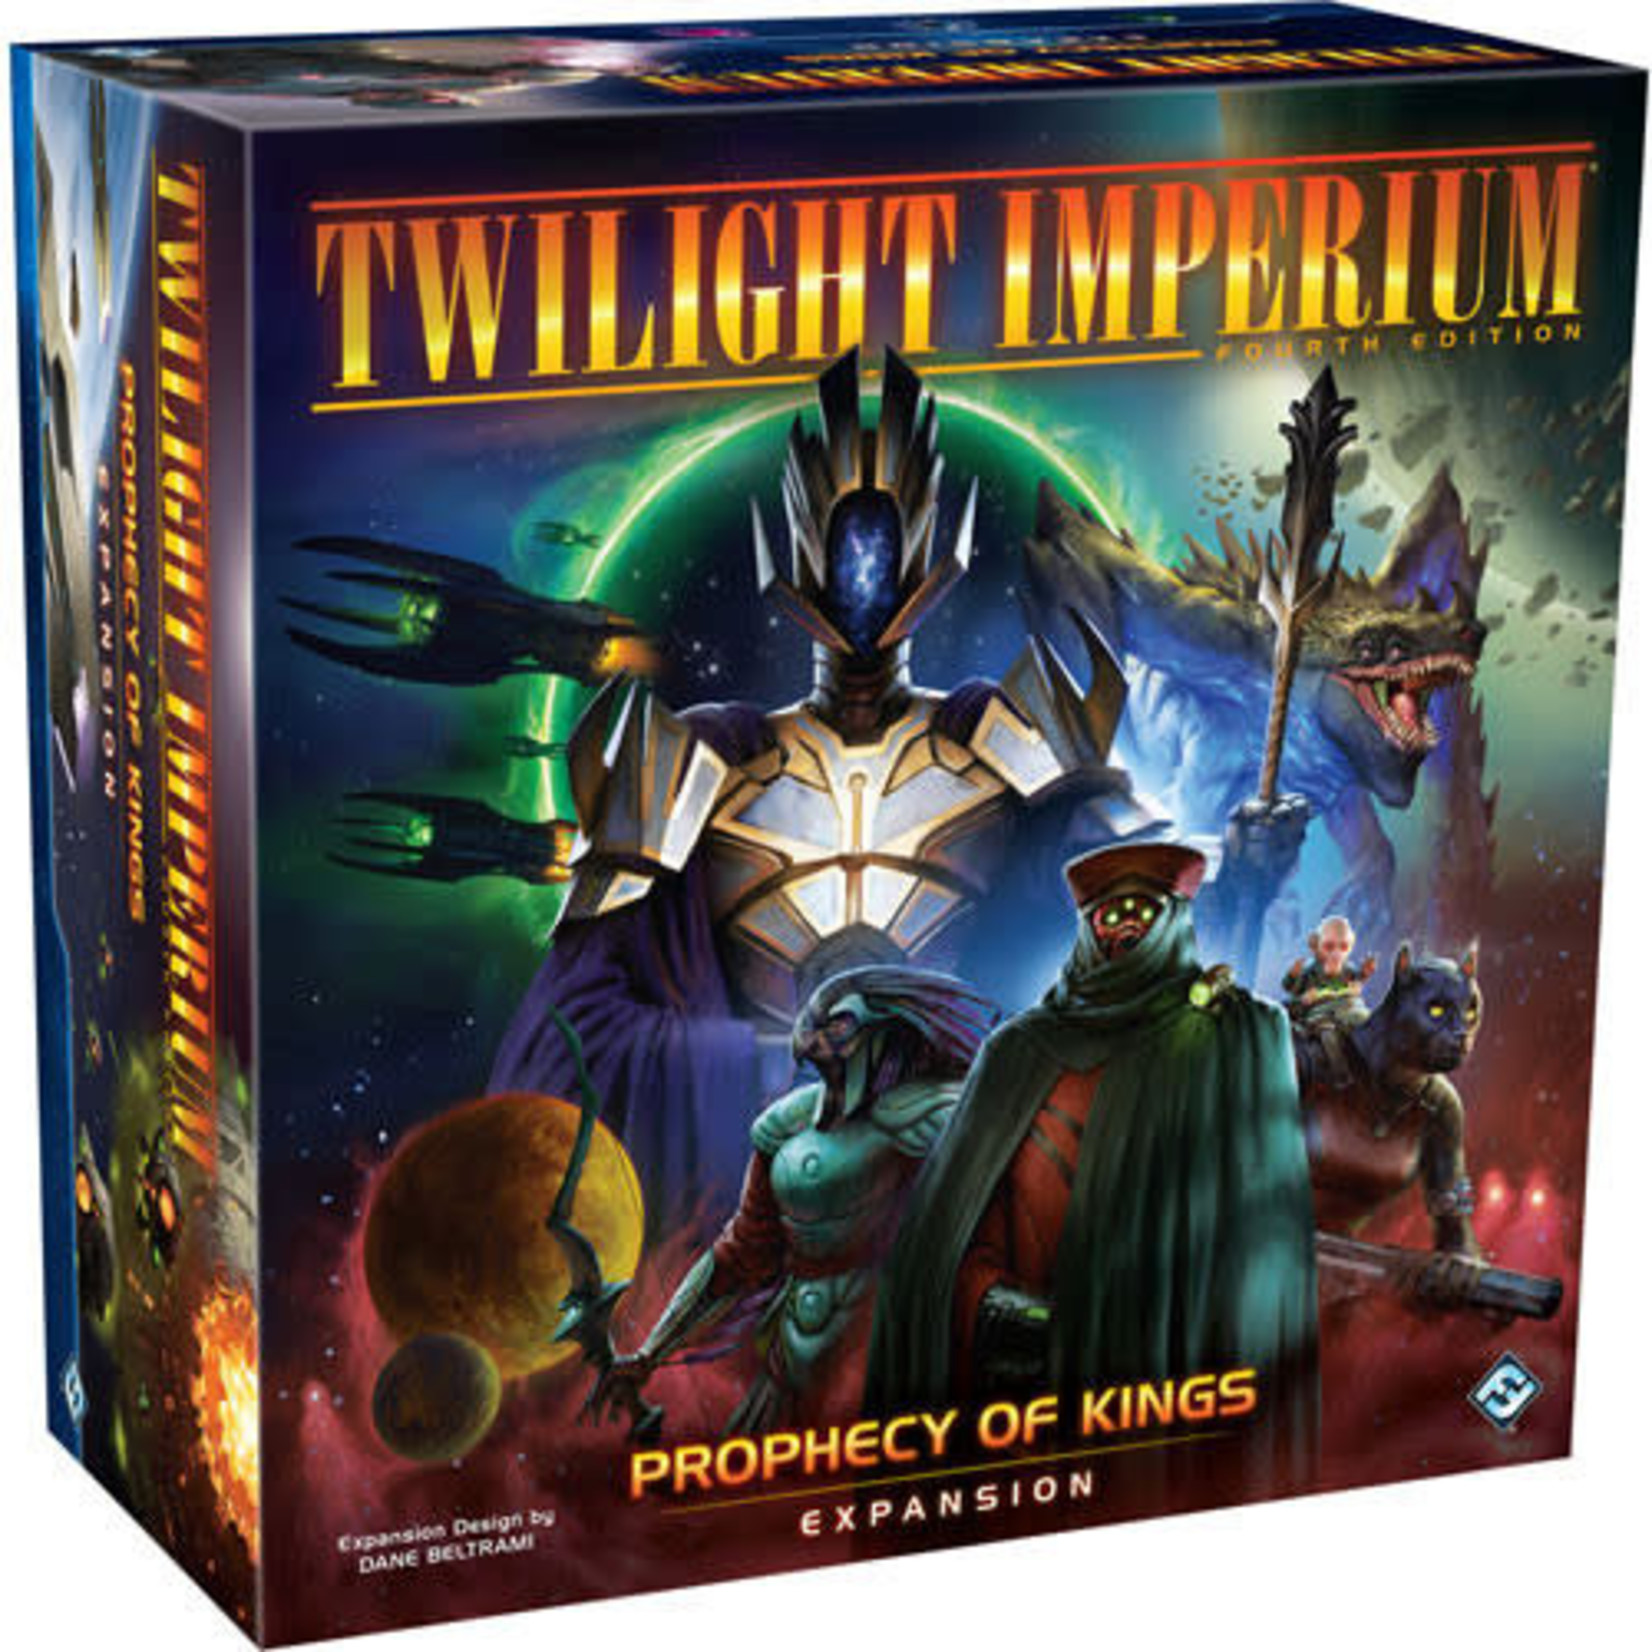 Twilight Imperium (Fourth Edition): Prophecy of Kings Board Game